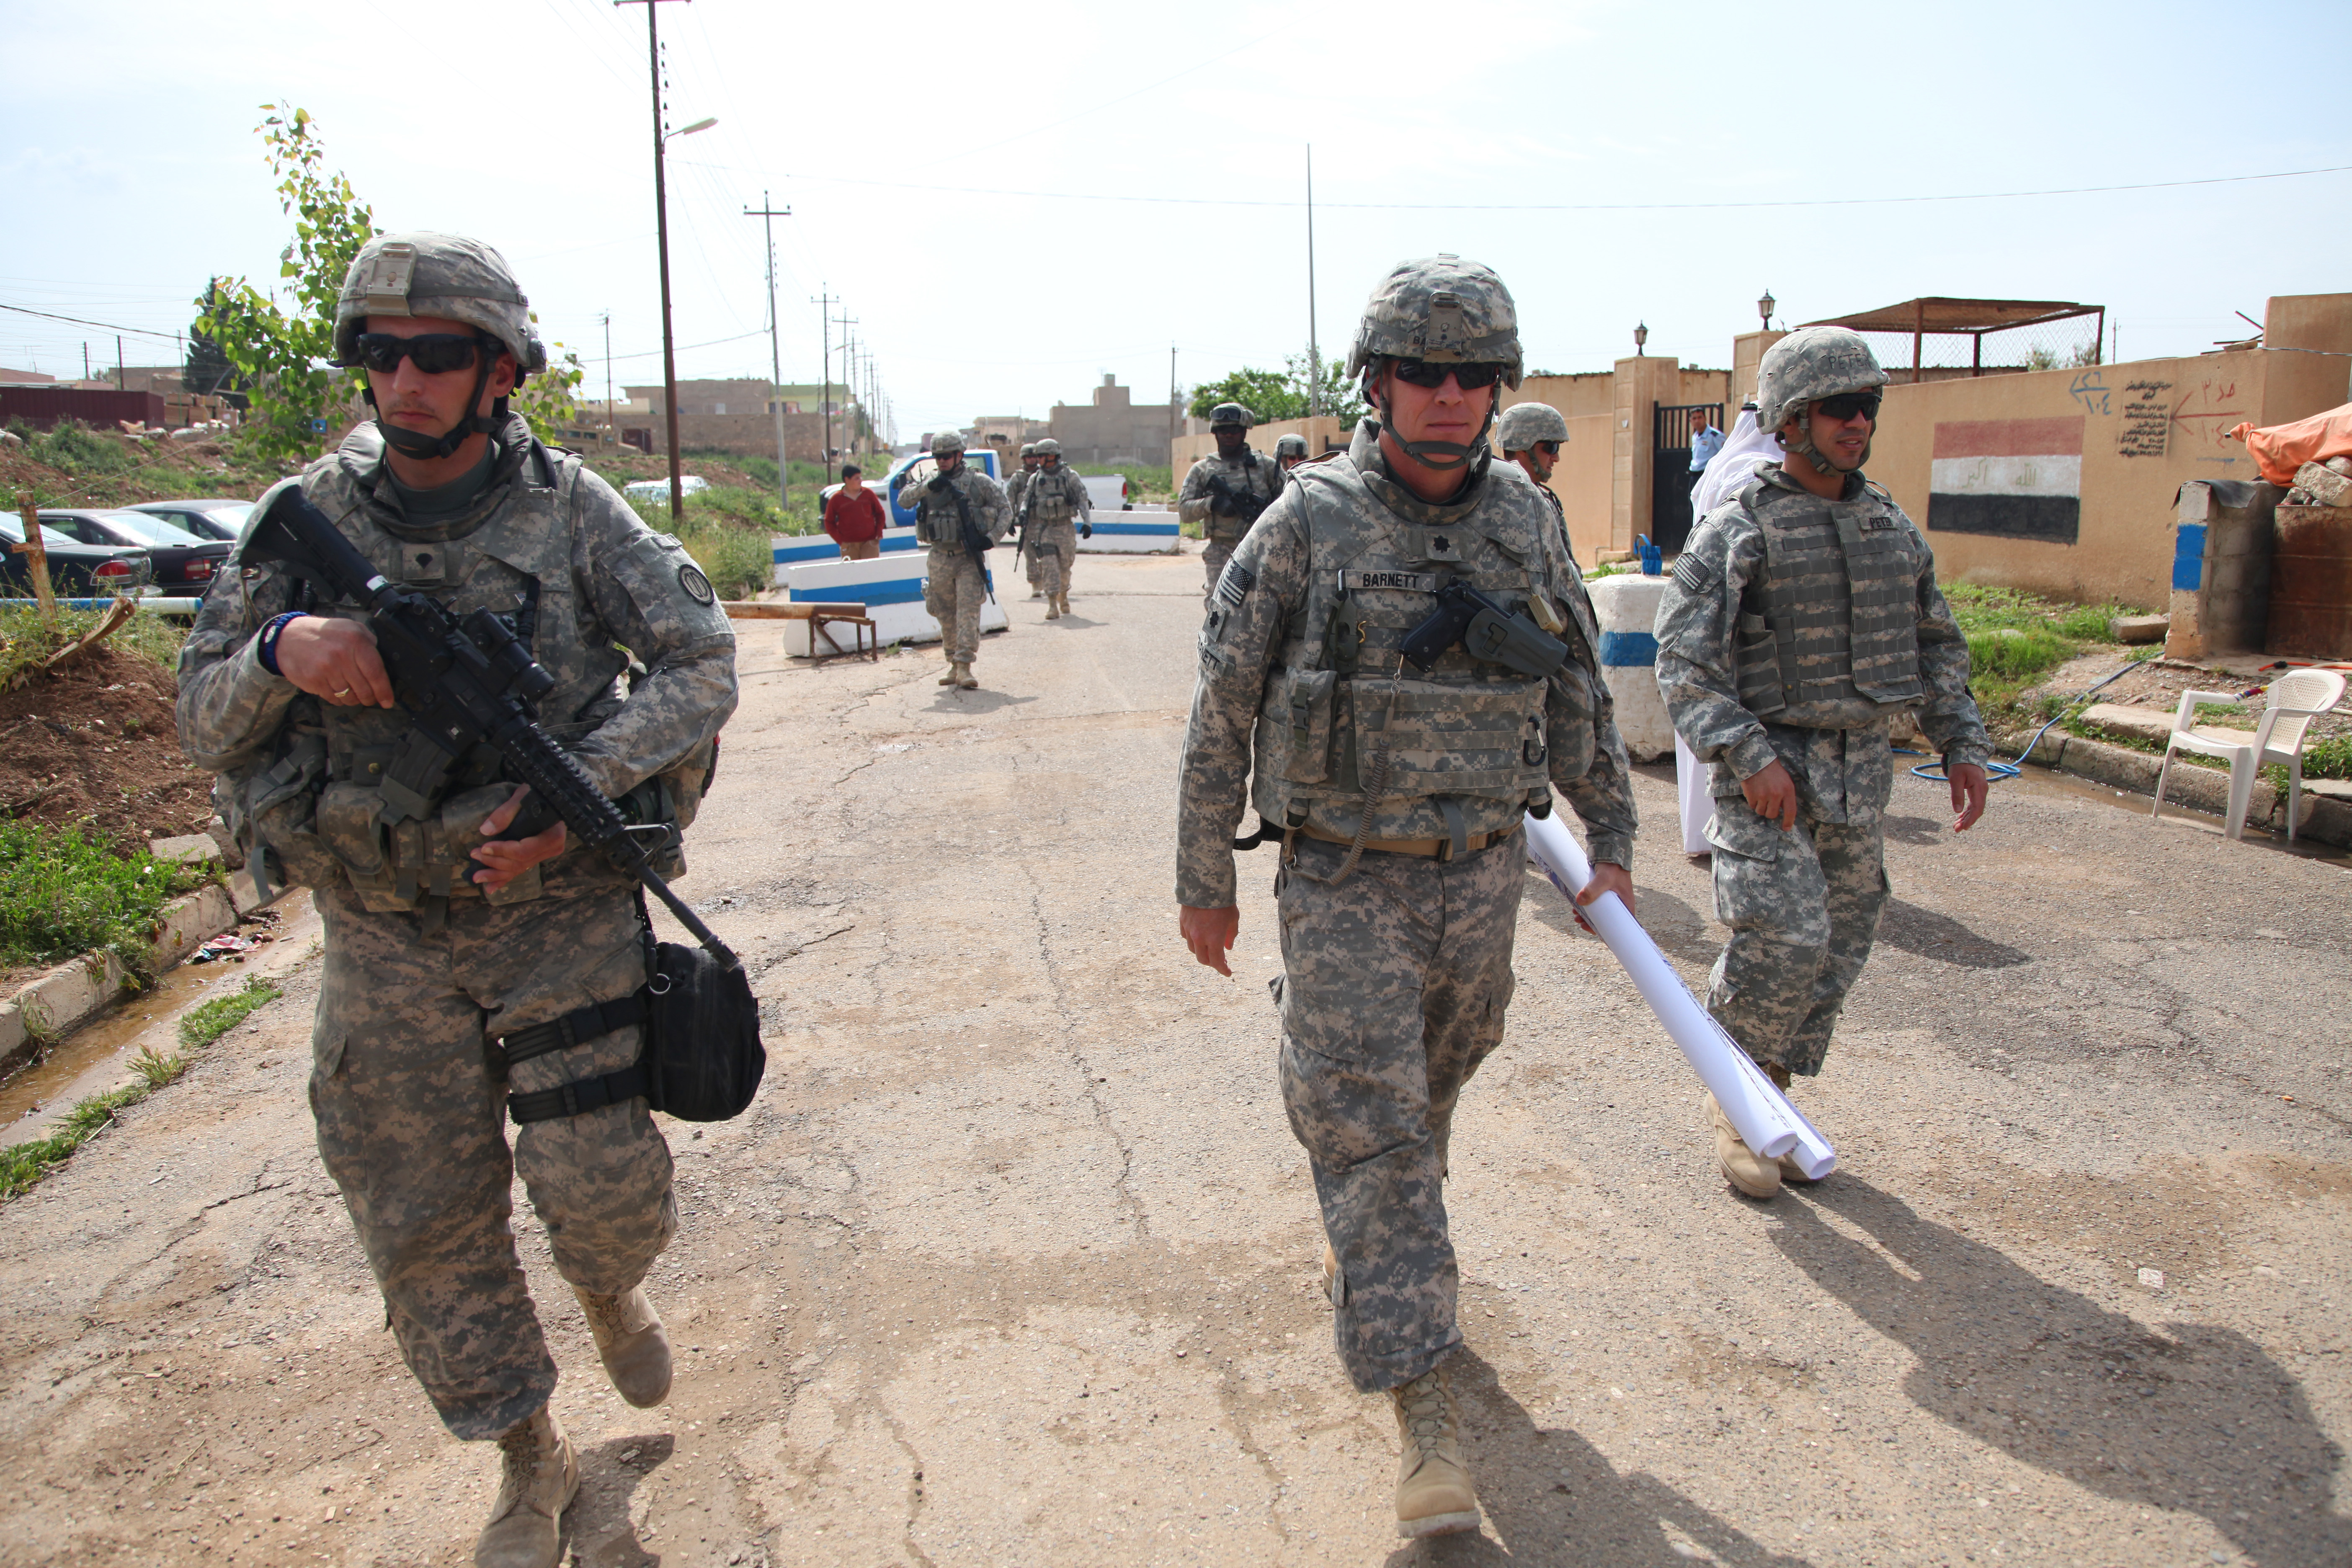 army national guard images